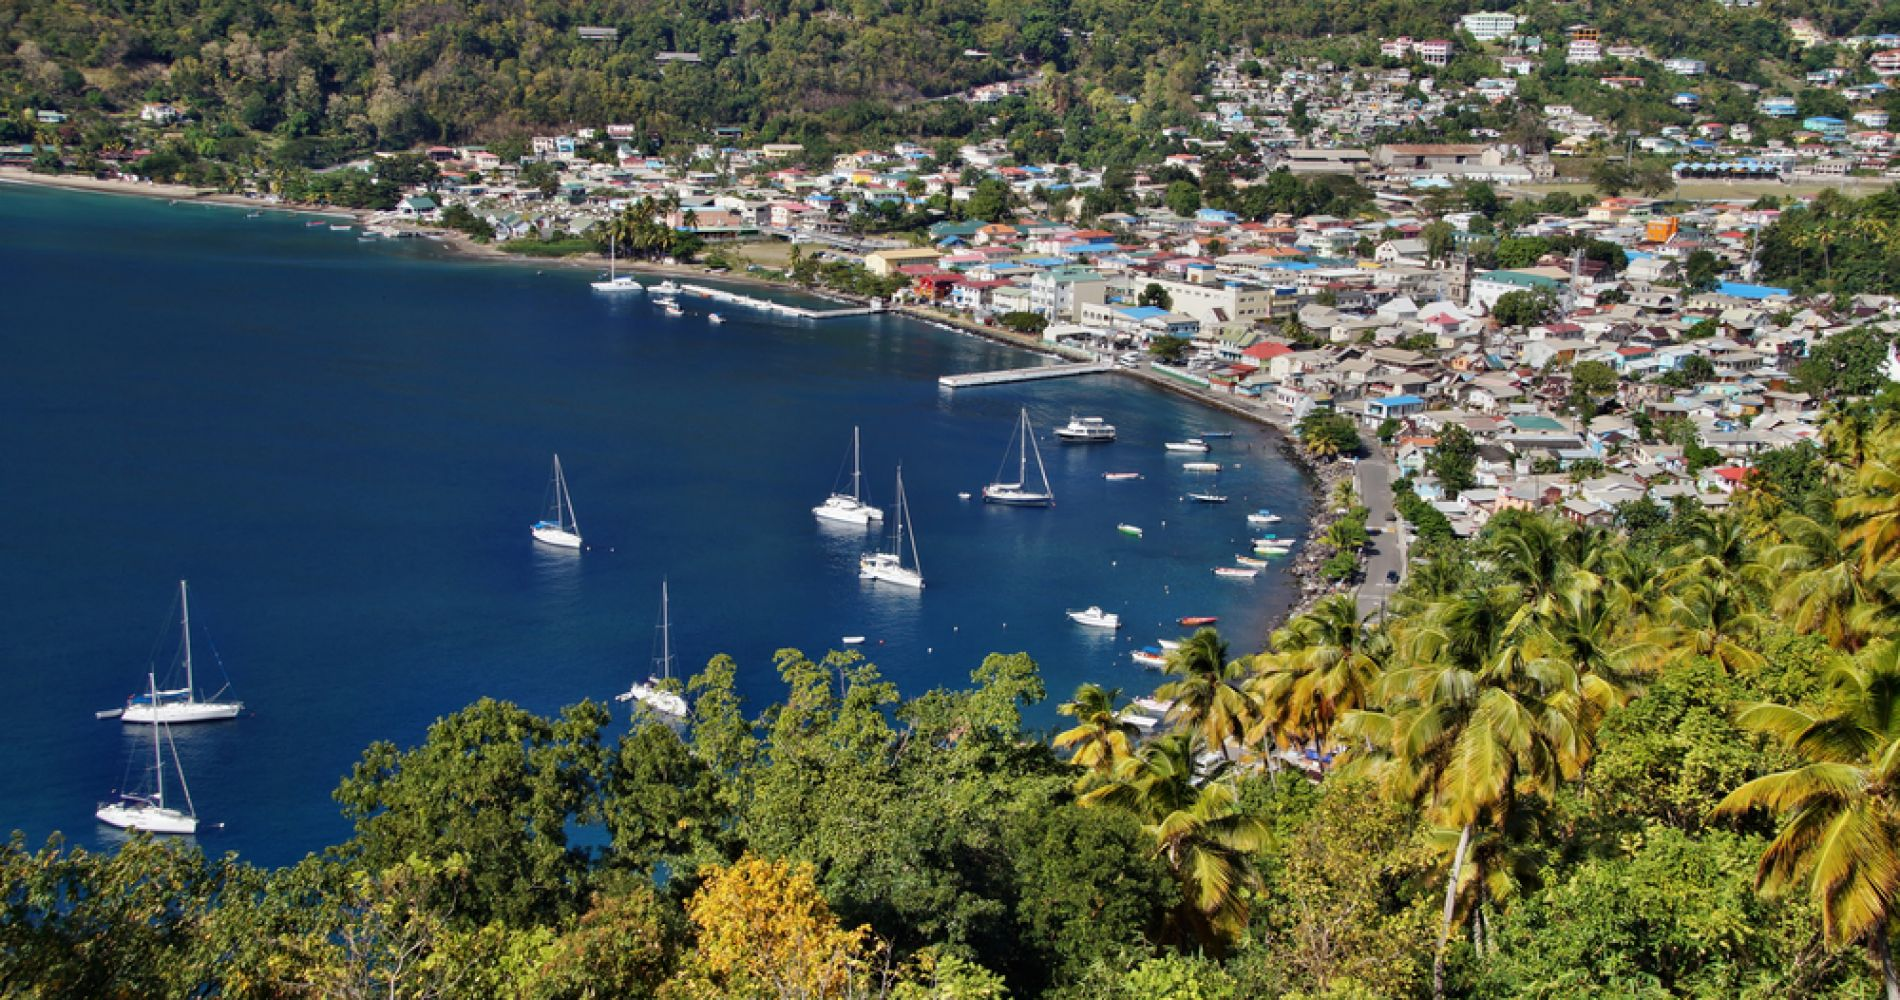 St. Lucia Speed Boat & Sightseeing Tour to Soufriere